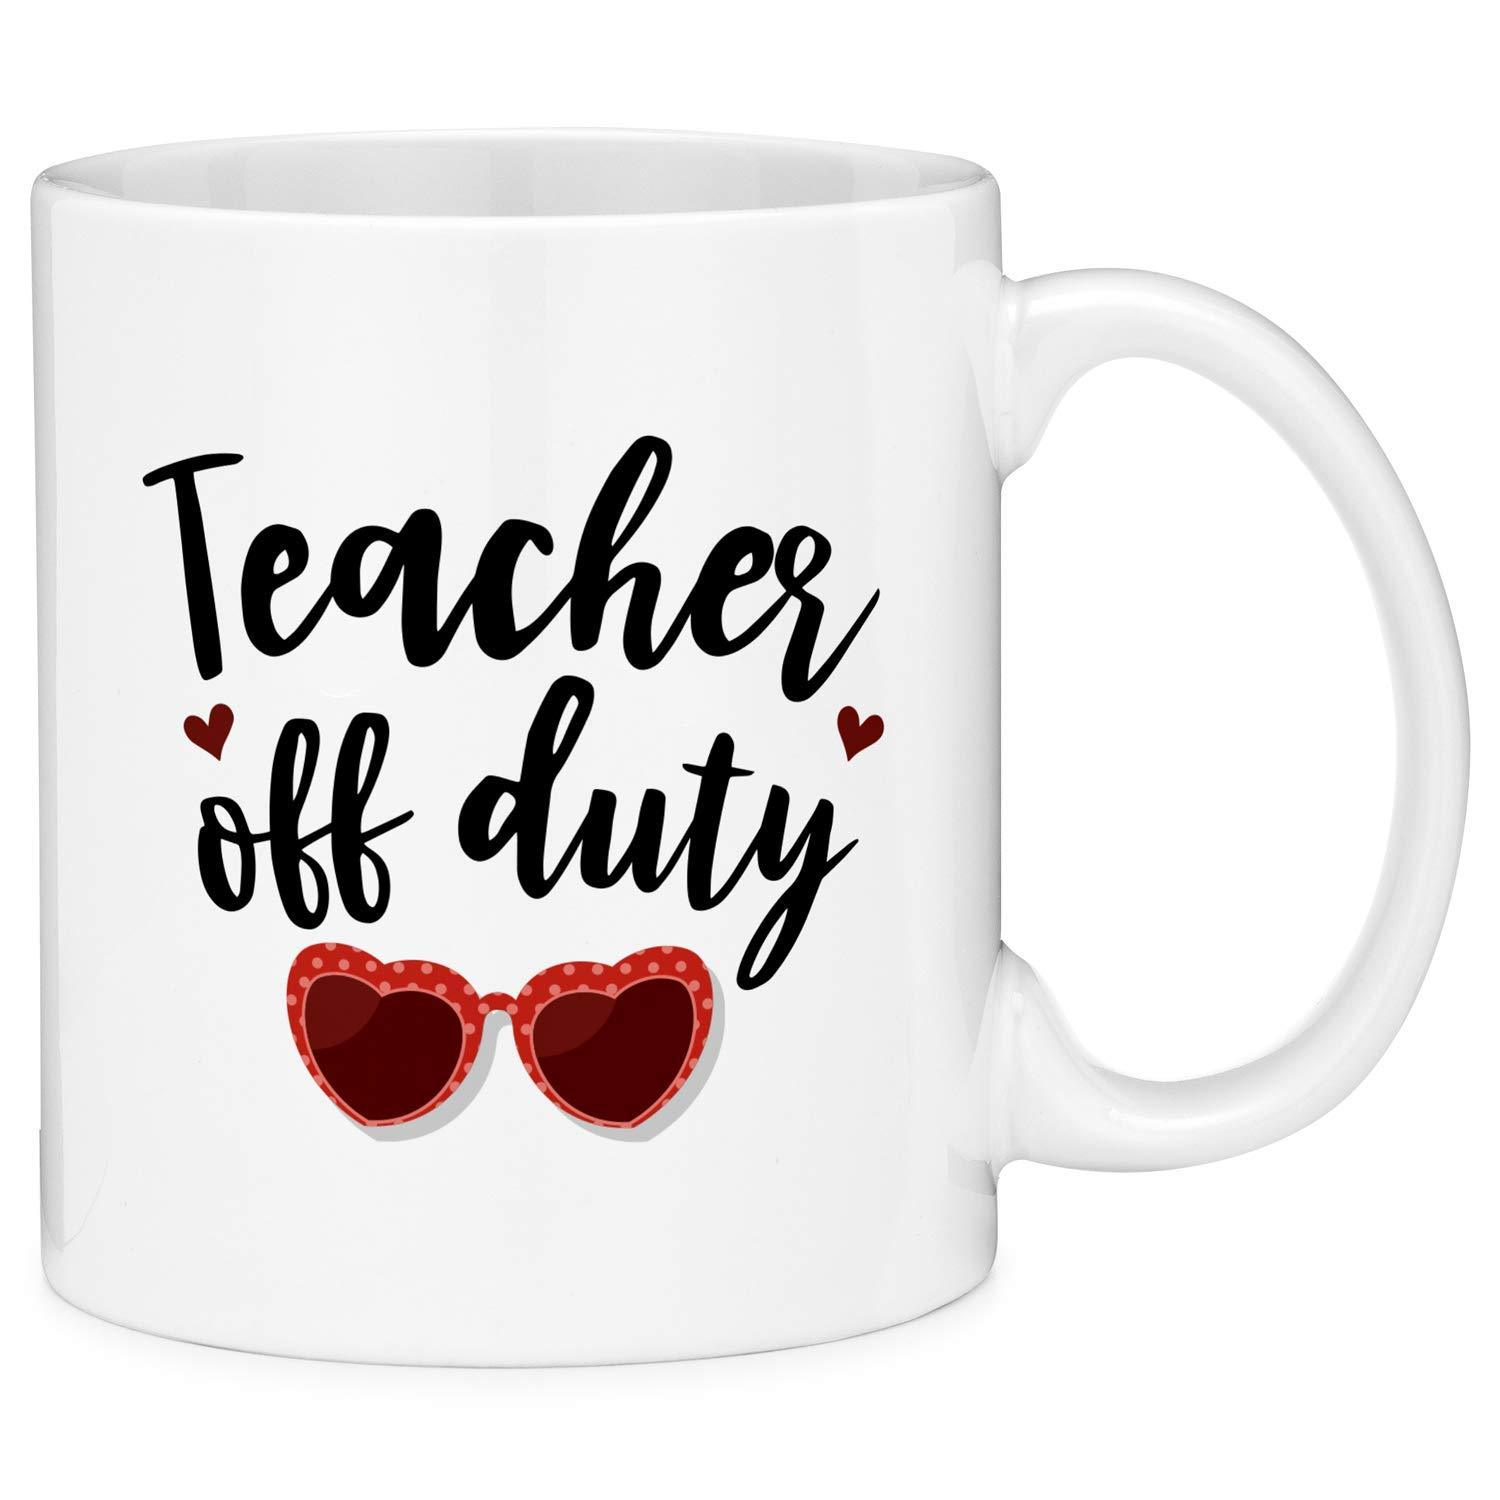 64a8537889d Teacher Off Duty Heart Sunglasses Funny Gift Coffee Mug | Products ...